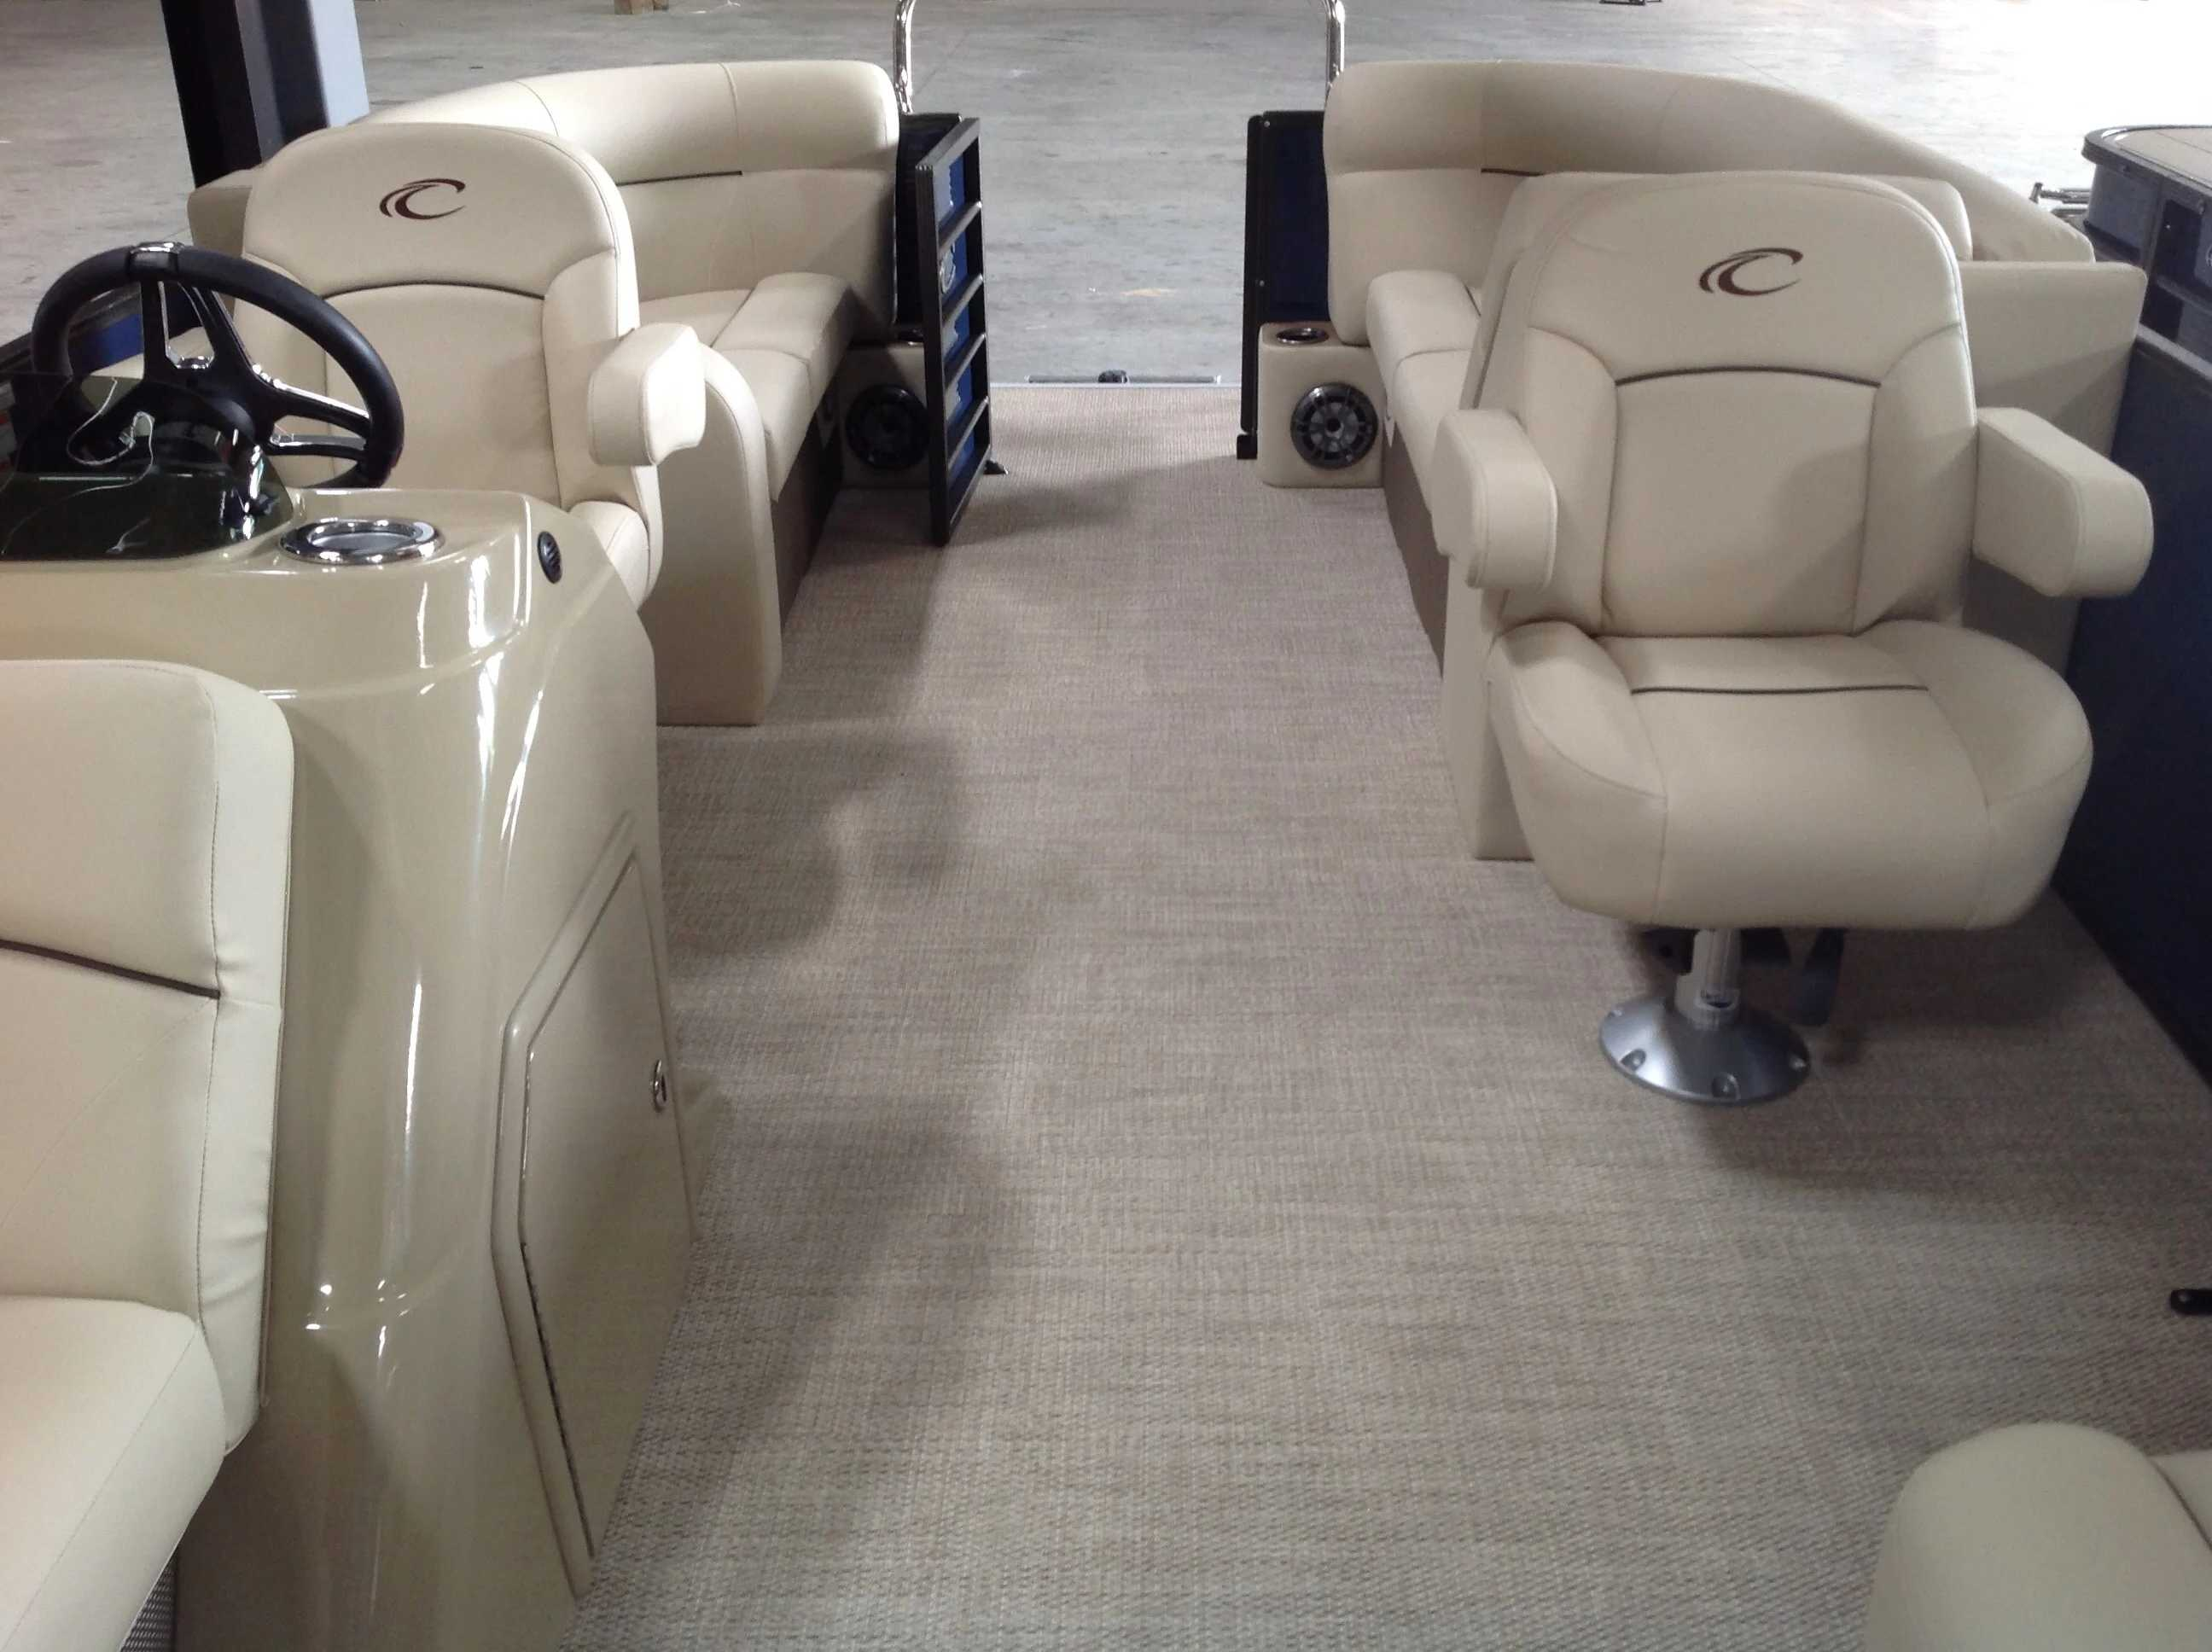 2021 Crest boat for sale, model of the boat is Cl Lx 200slc & Image # 6 of 13